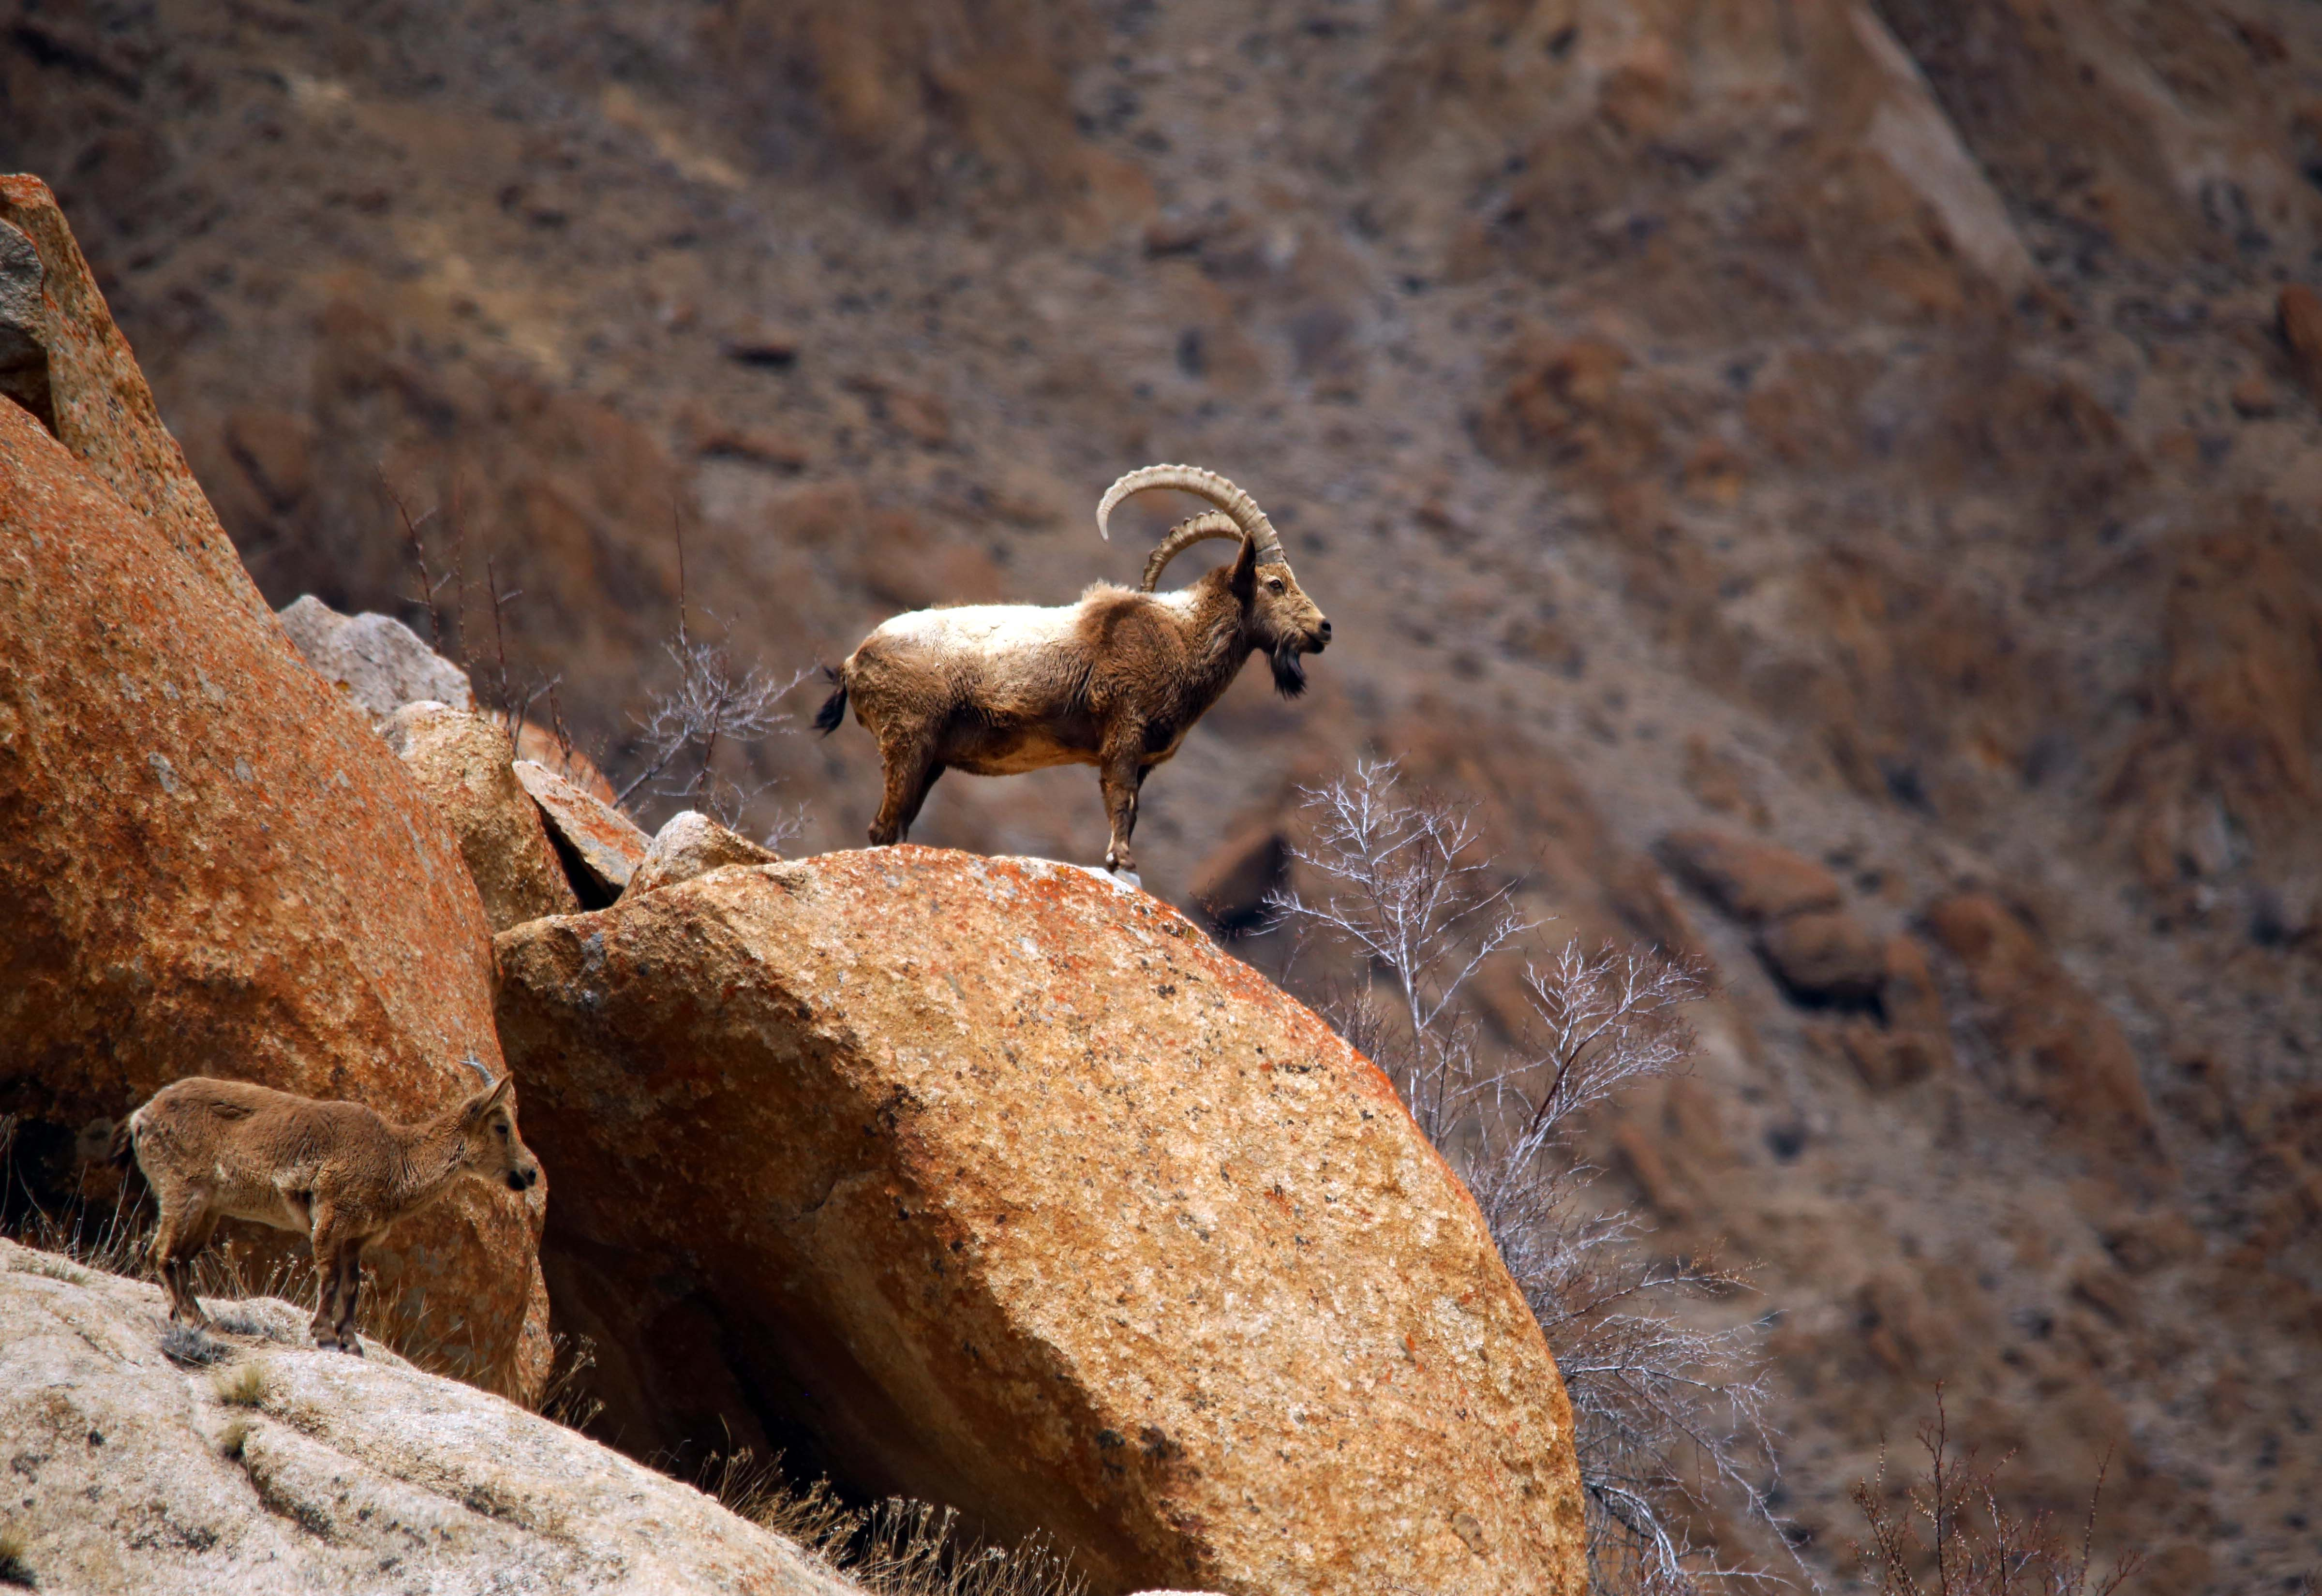 The Siberian ibex is found in the mountains of South and Central Asia, including the Himalayas in India and Pakistan, at elevations above 3,800 m. Photo: Surya Ramachandran